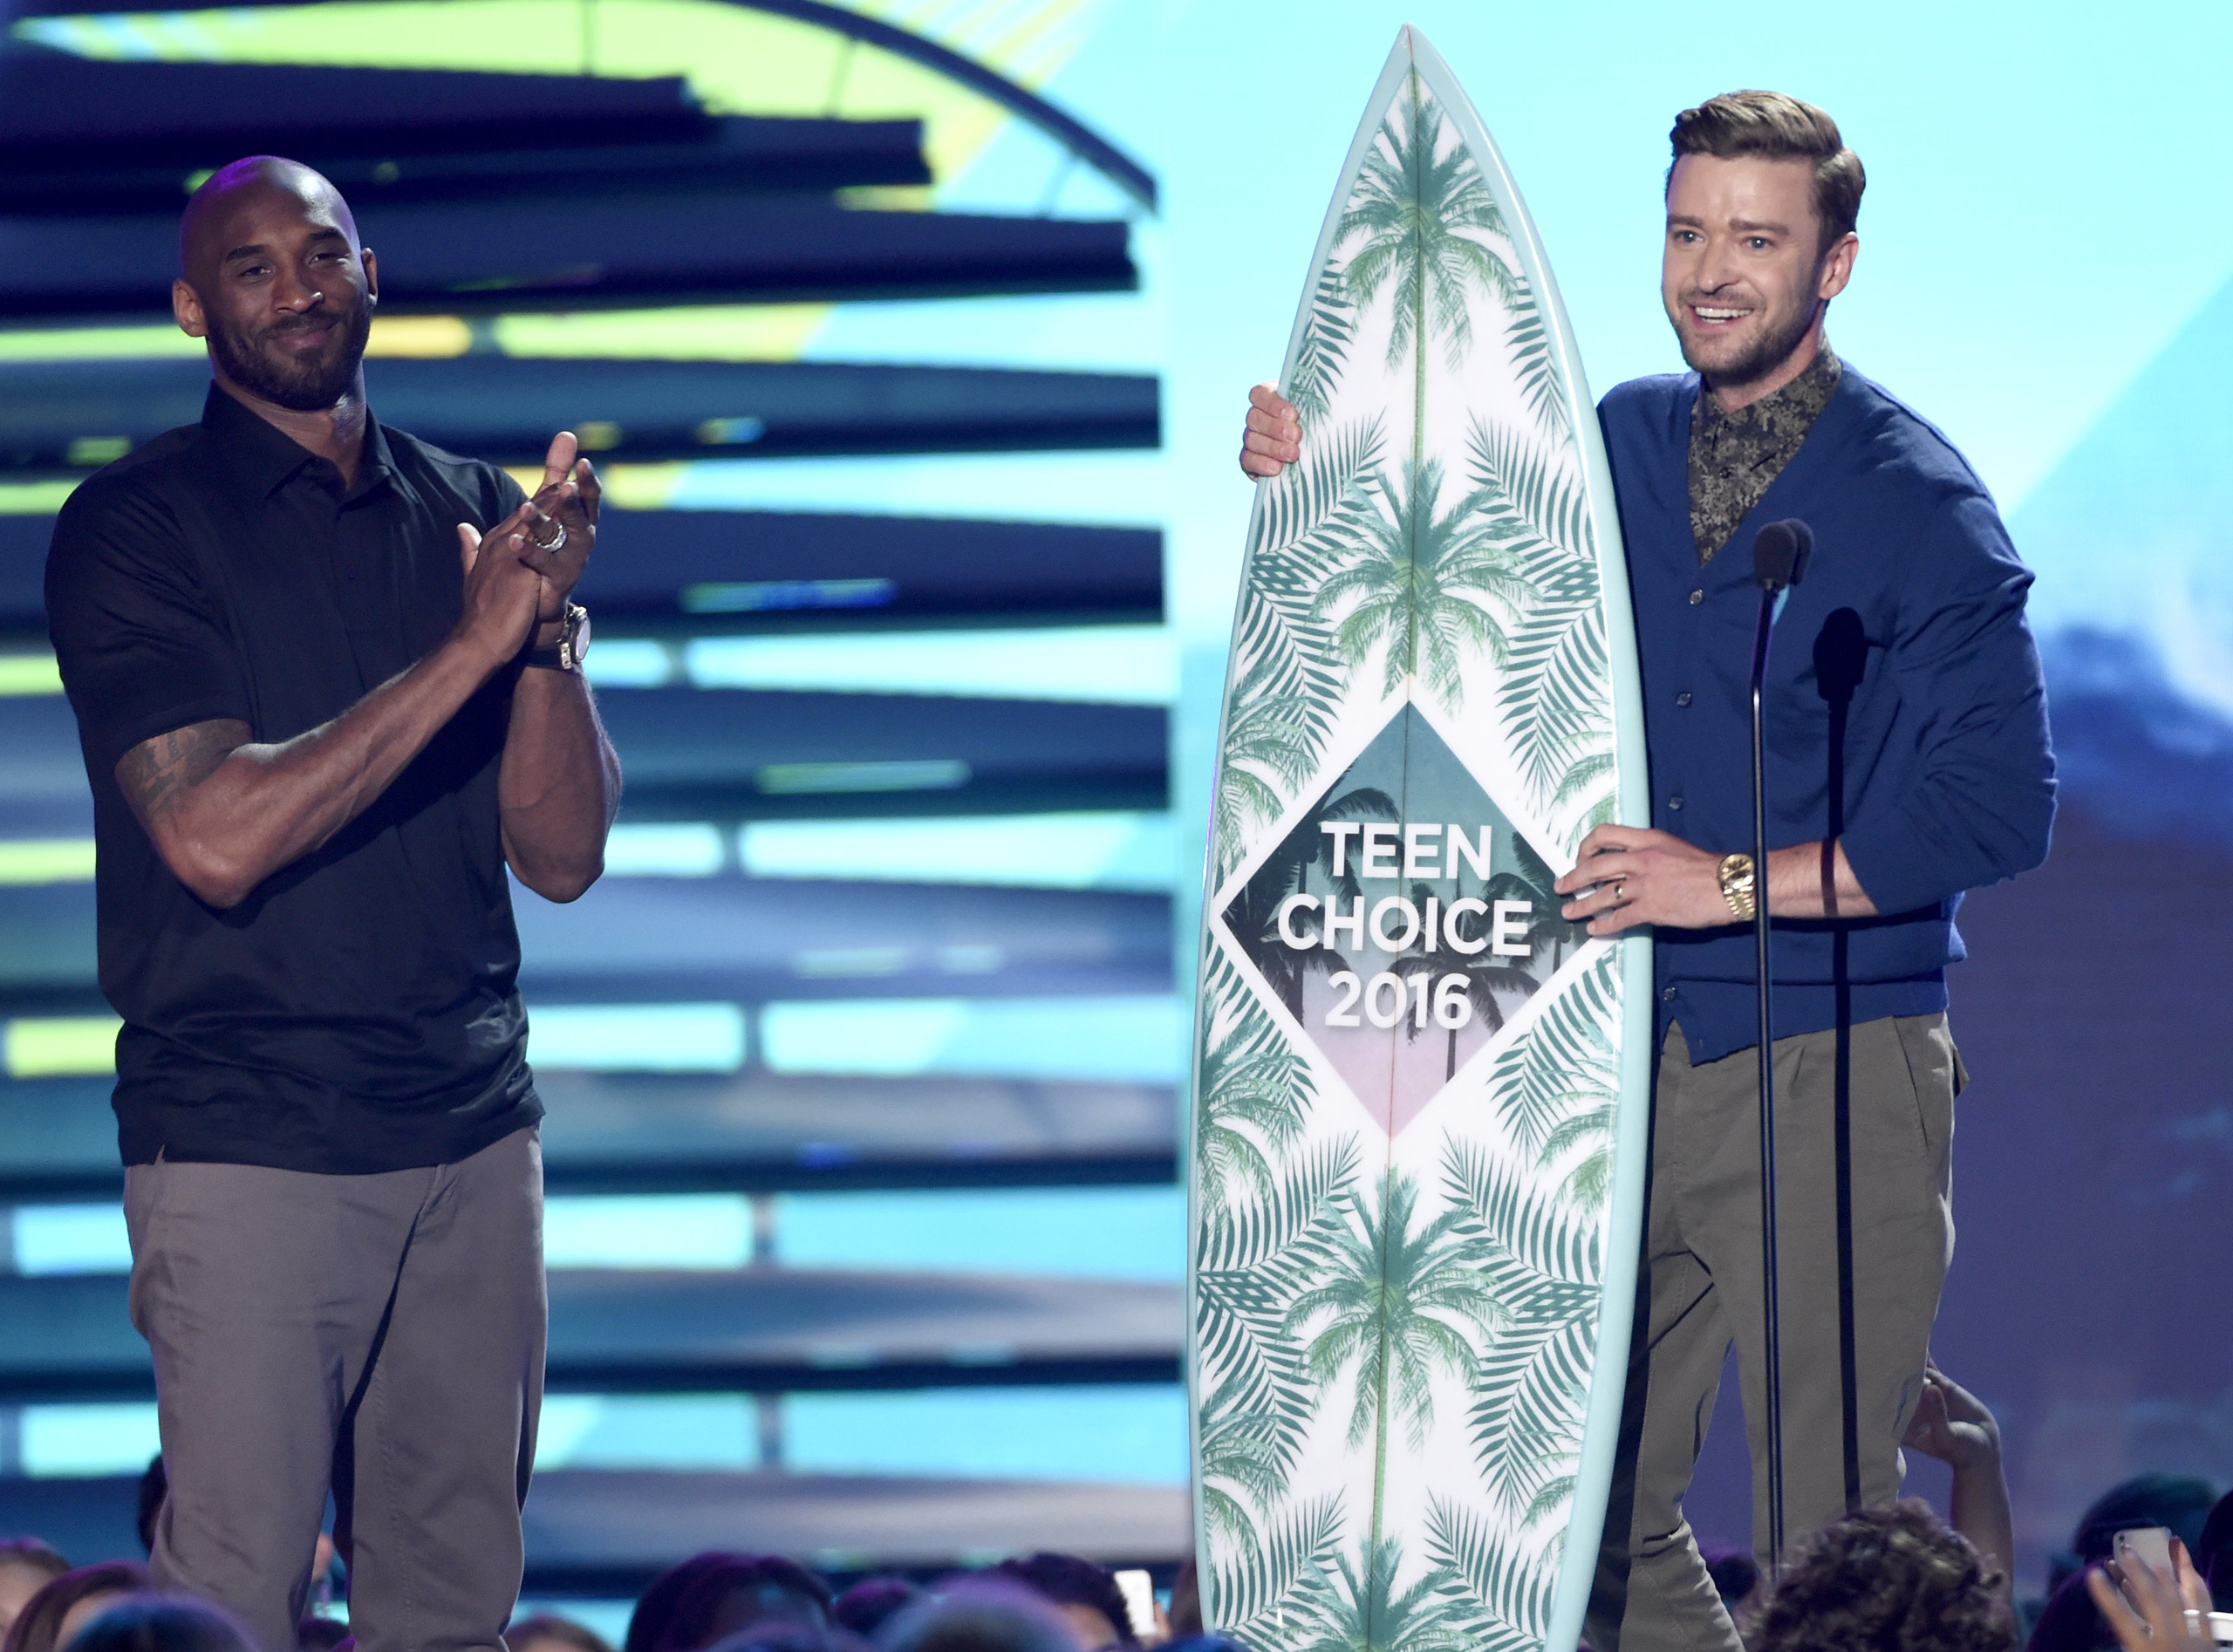 Justin Timberlake accepts the decade award at the Teen Choice Awards at the Forum in Inglewood, Calif. on July 31, 2016.